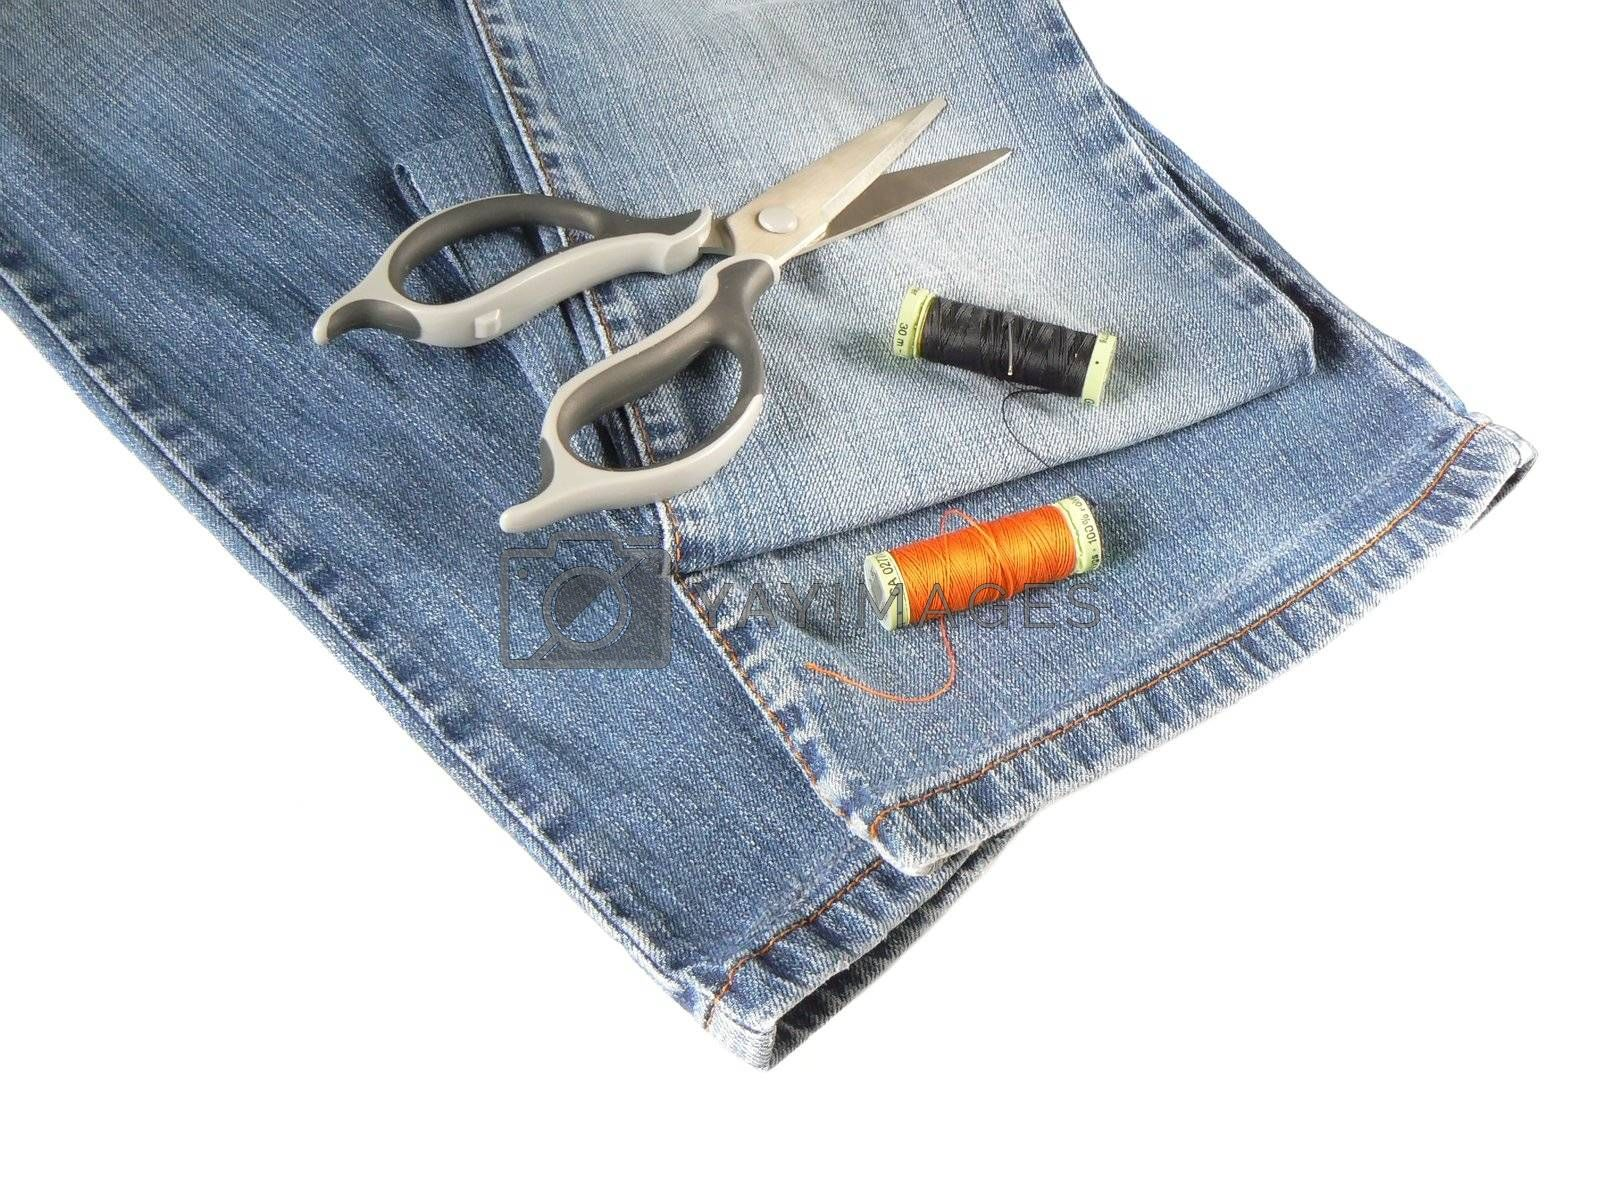 sewing accessorys and jeans on white background